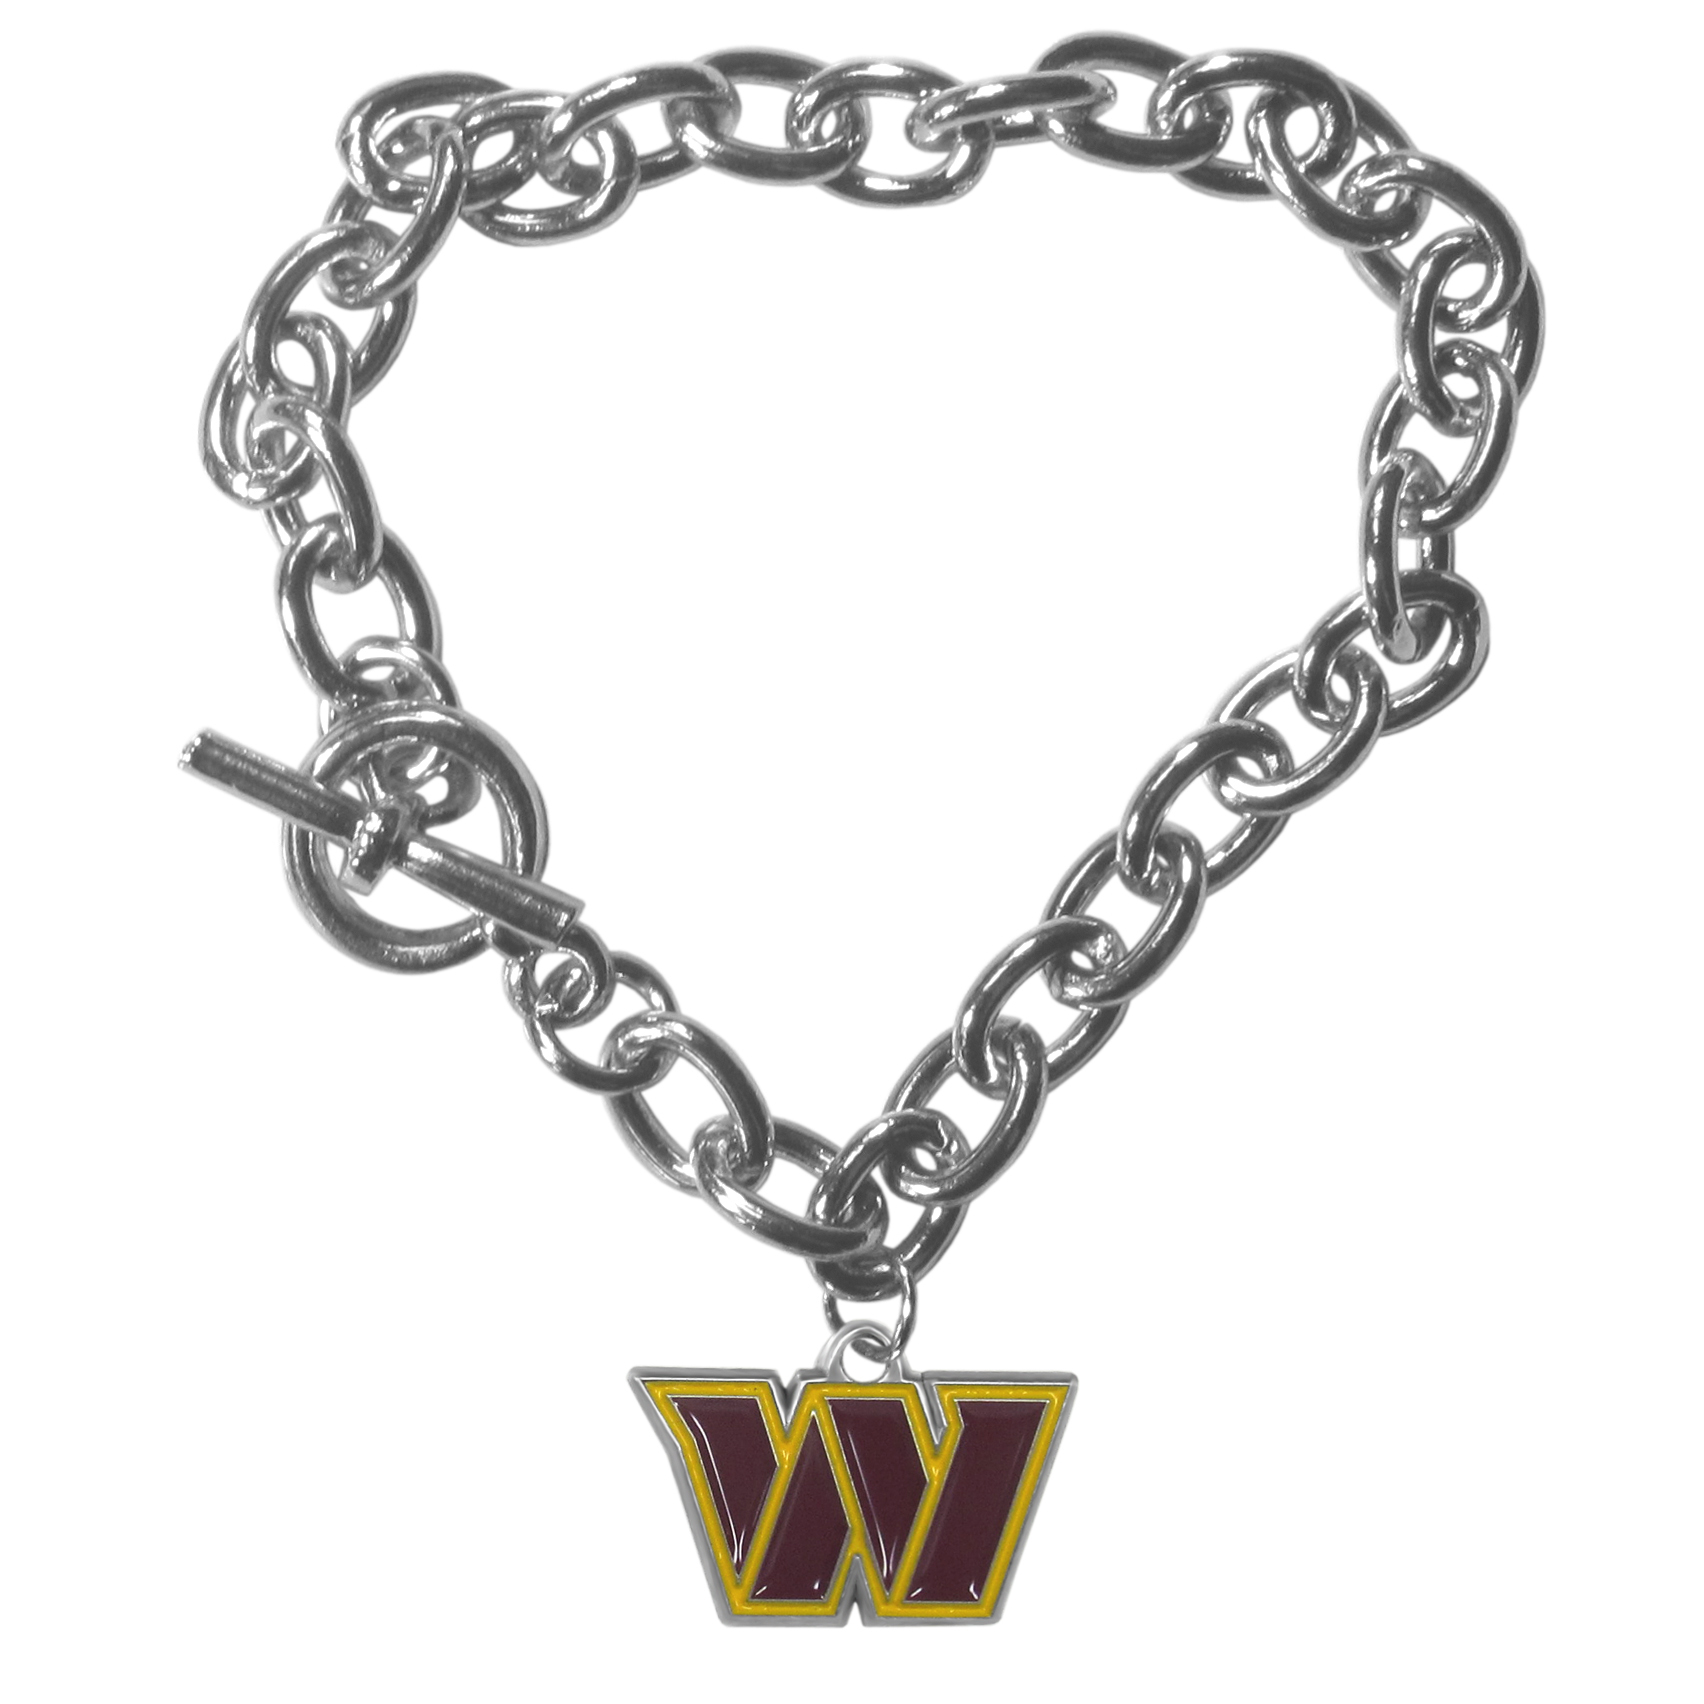 Washington Redskins Charm Chain Bracelet - Our classic single charm bracelet is a great way to show off your team pride! The 7.5 inch large link chain features a high polish Washington Redskins charm and features a toggle clasp which makes it super easy to take on and off.